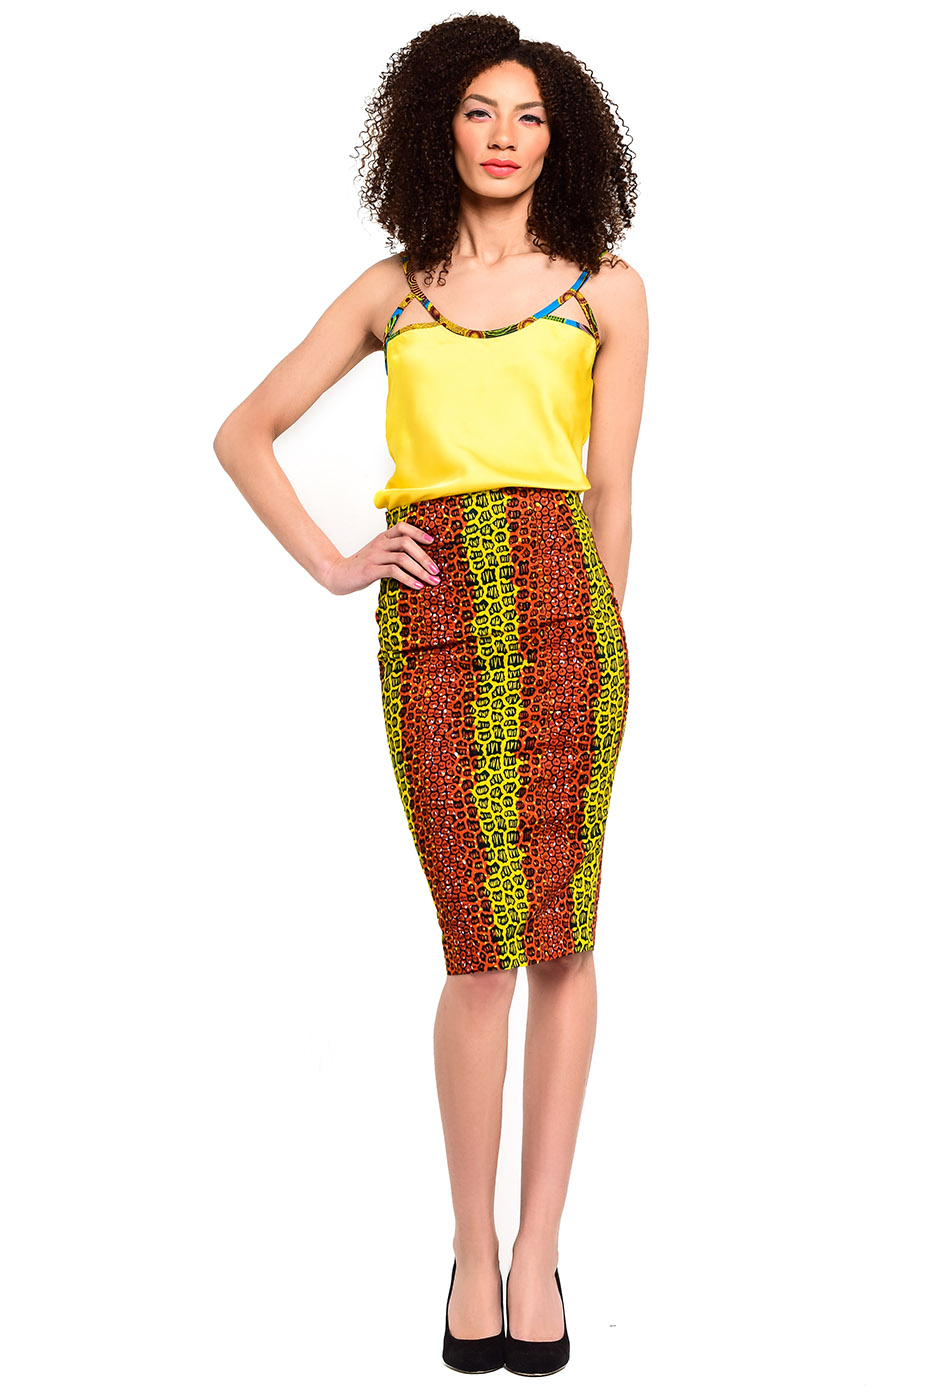 For the love of African prints: Mam-Maw fashion